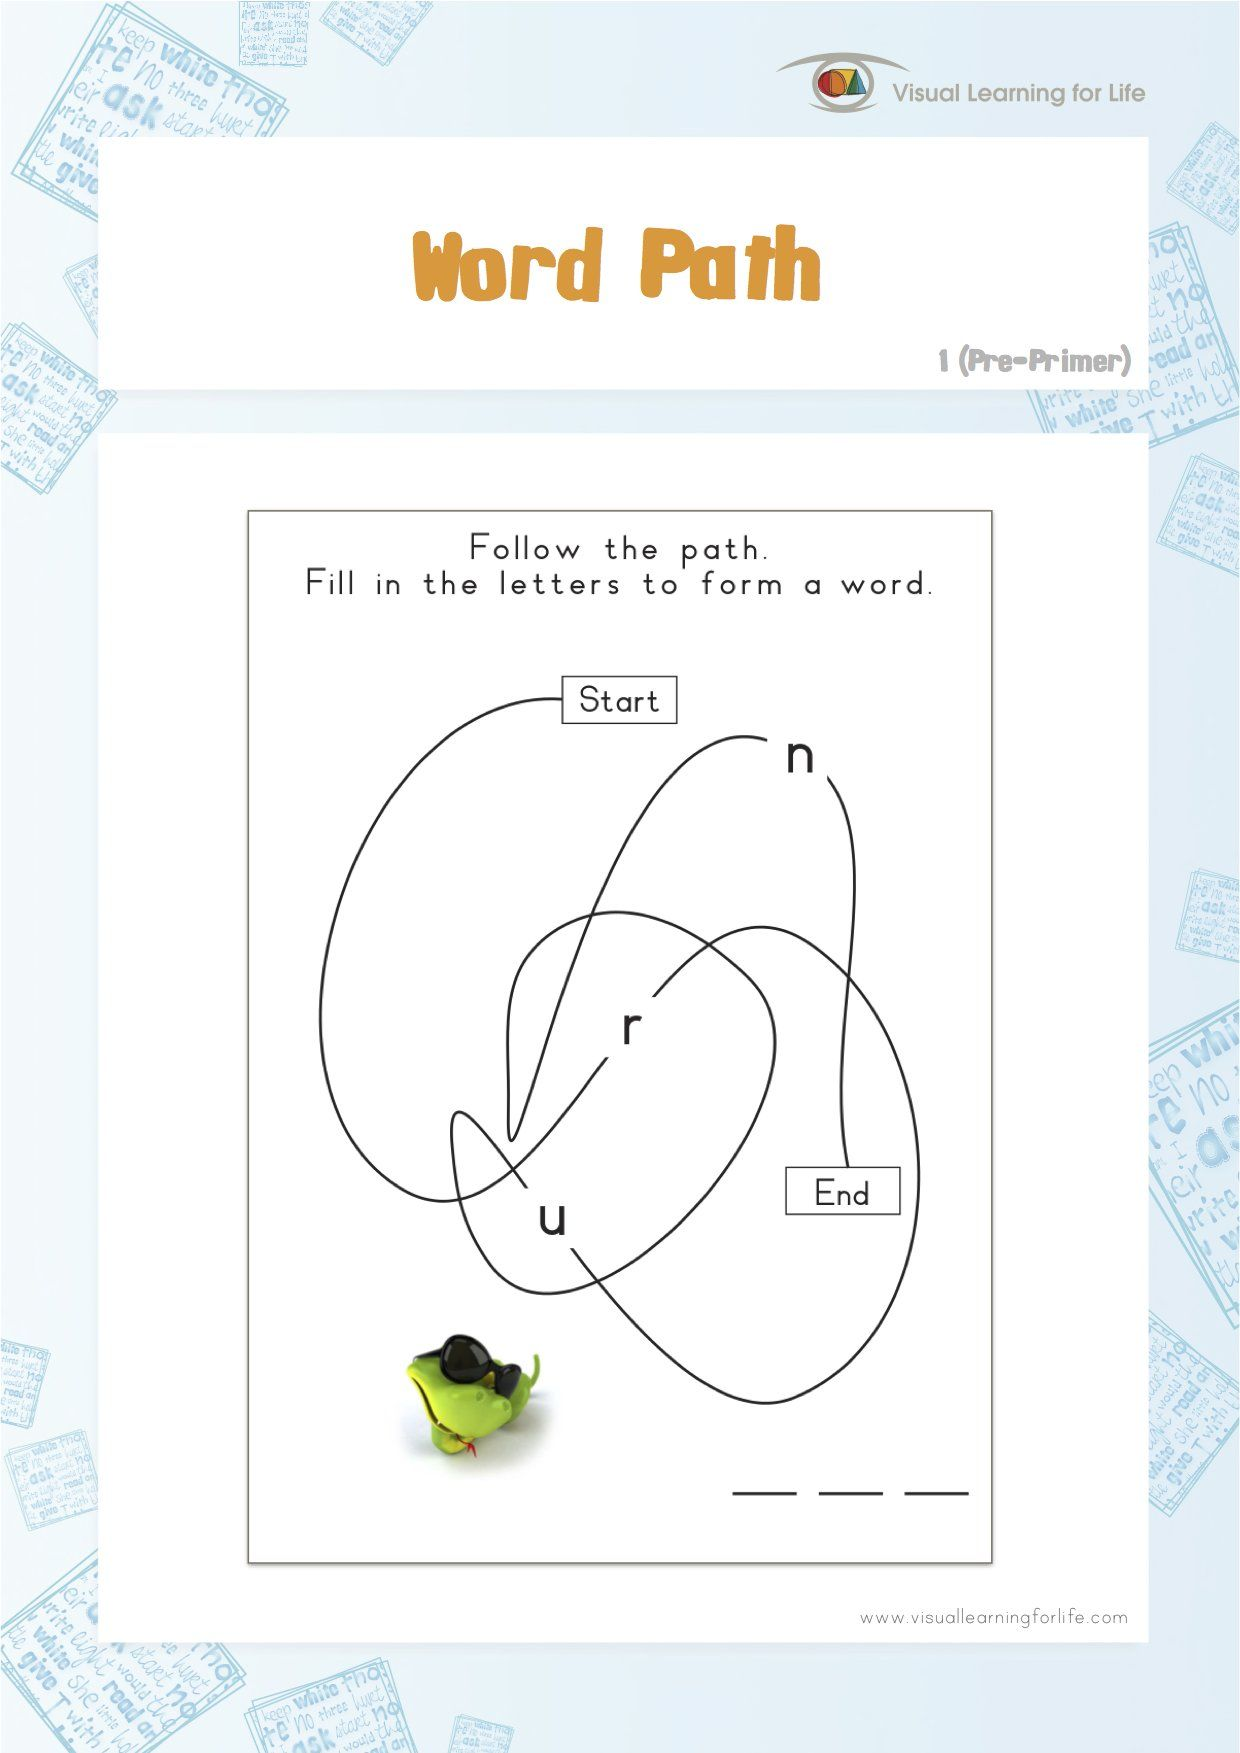 In The Word Path Worksheets The Student Must Follow The